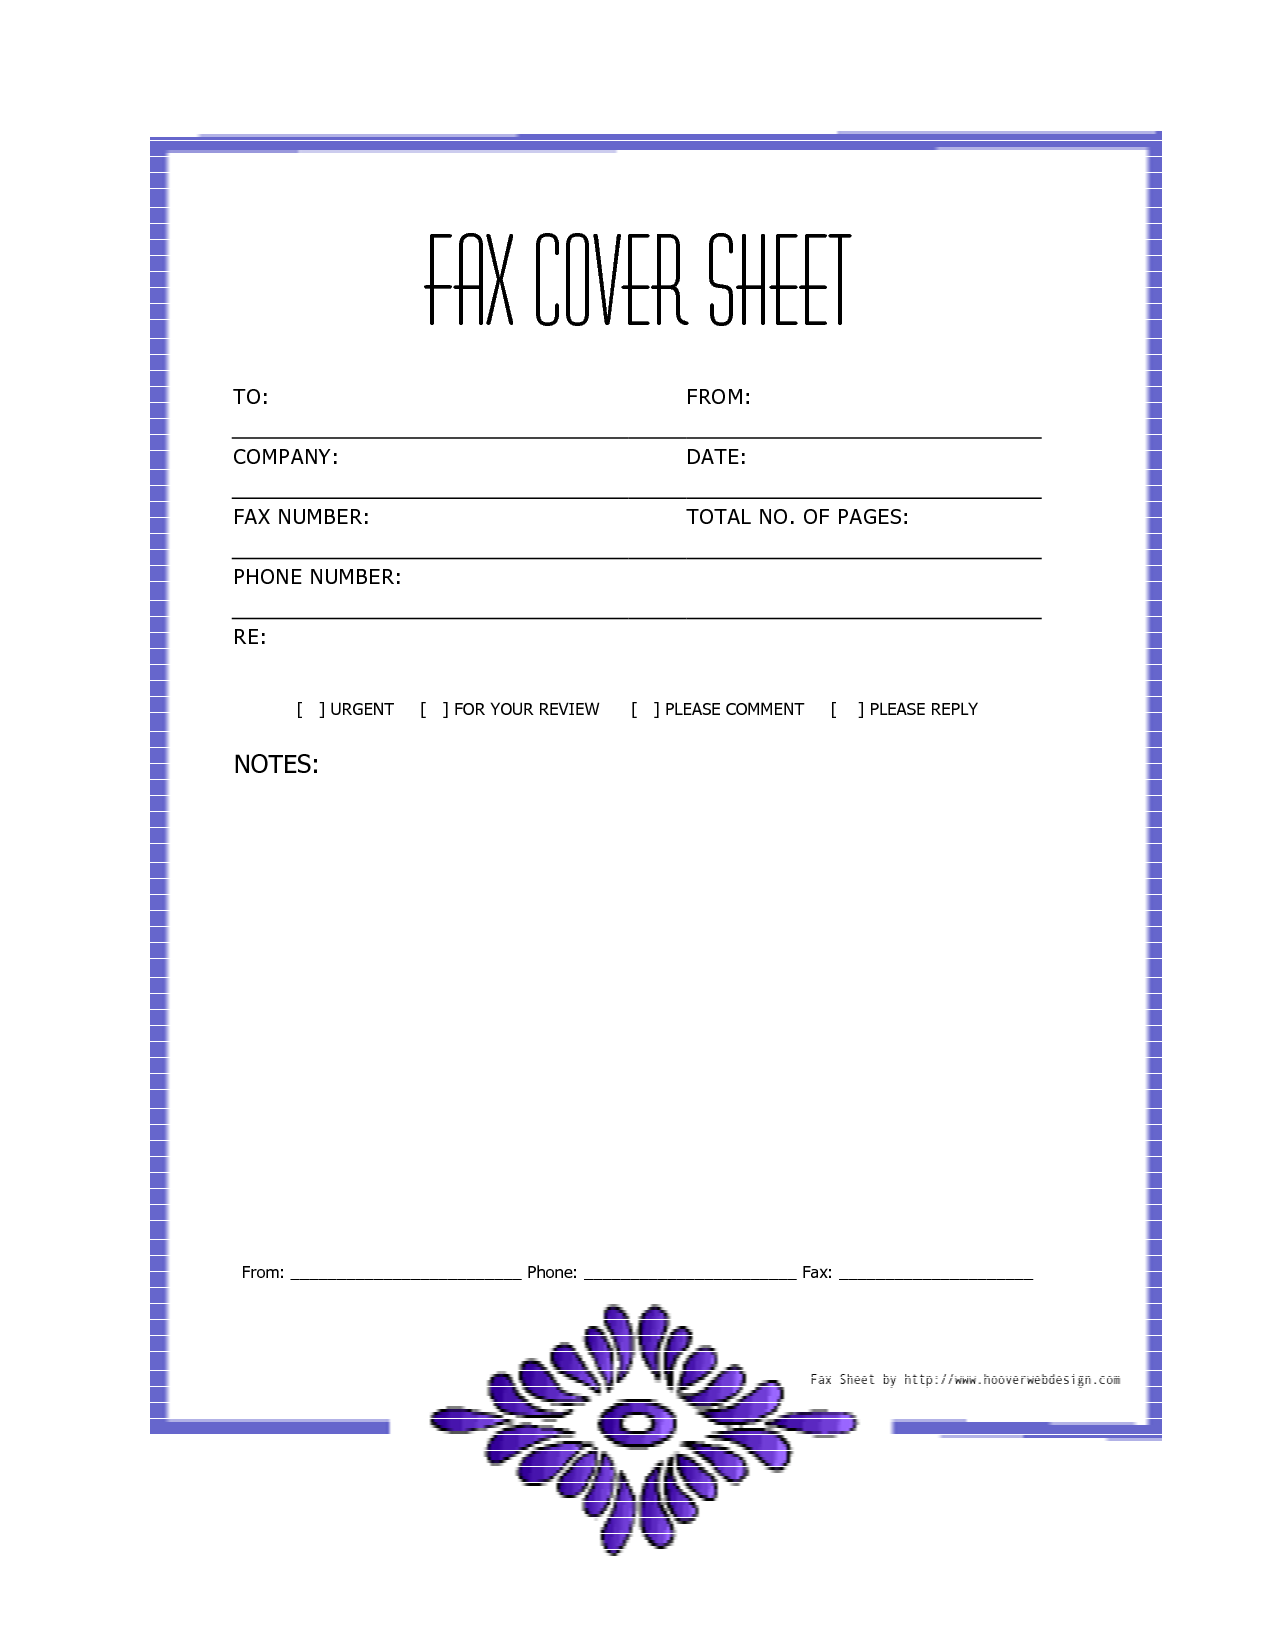 Free downloads fax covers sheets free printable fax cover sheet free downloads fax covers sheets free printable fax cover sheet template elegant download as madrichimfo Images